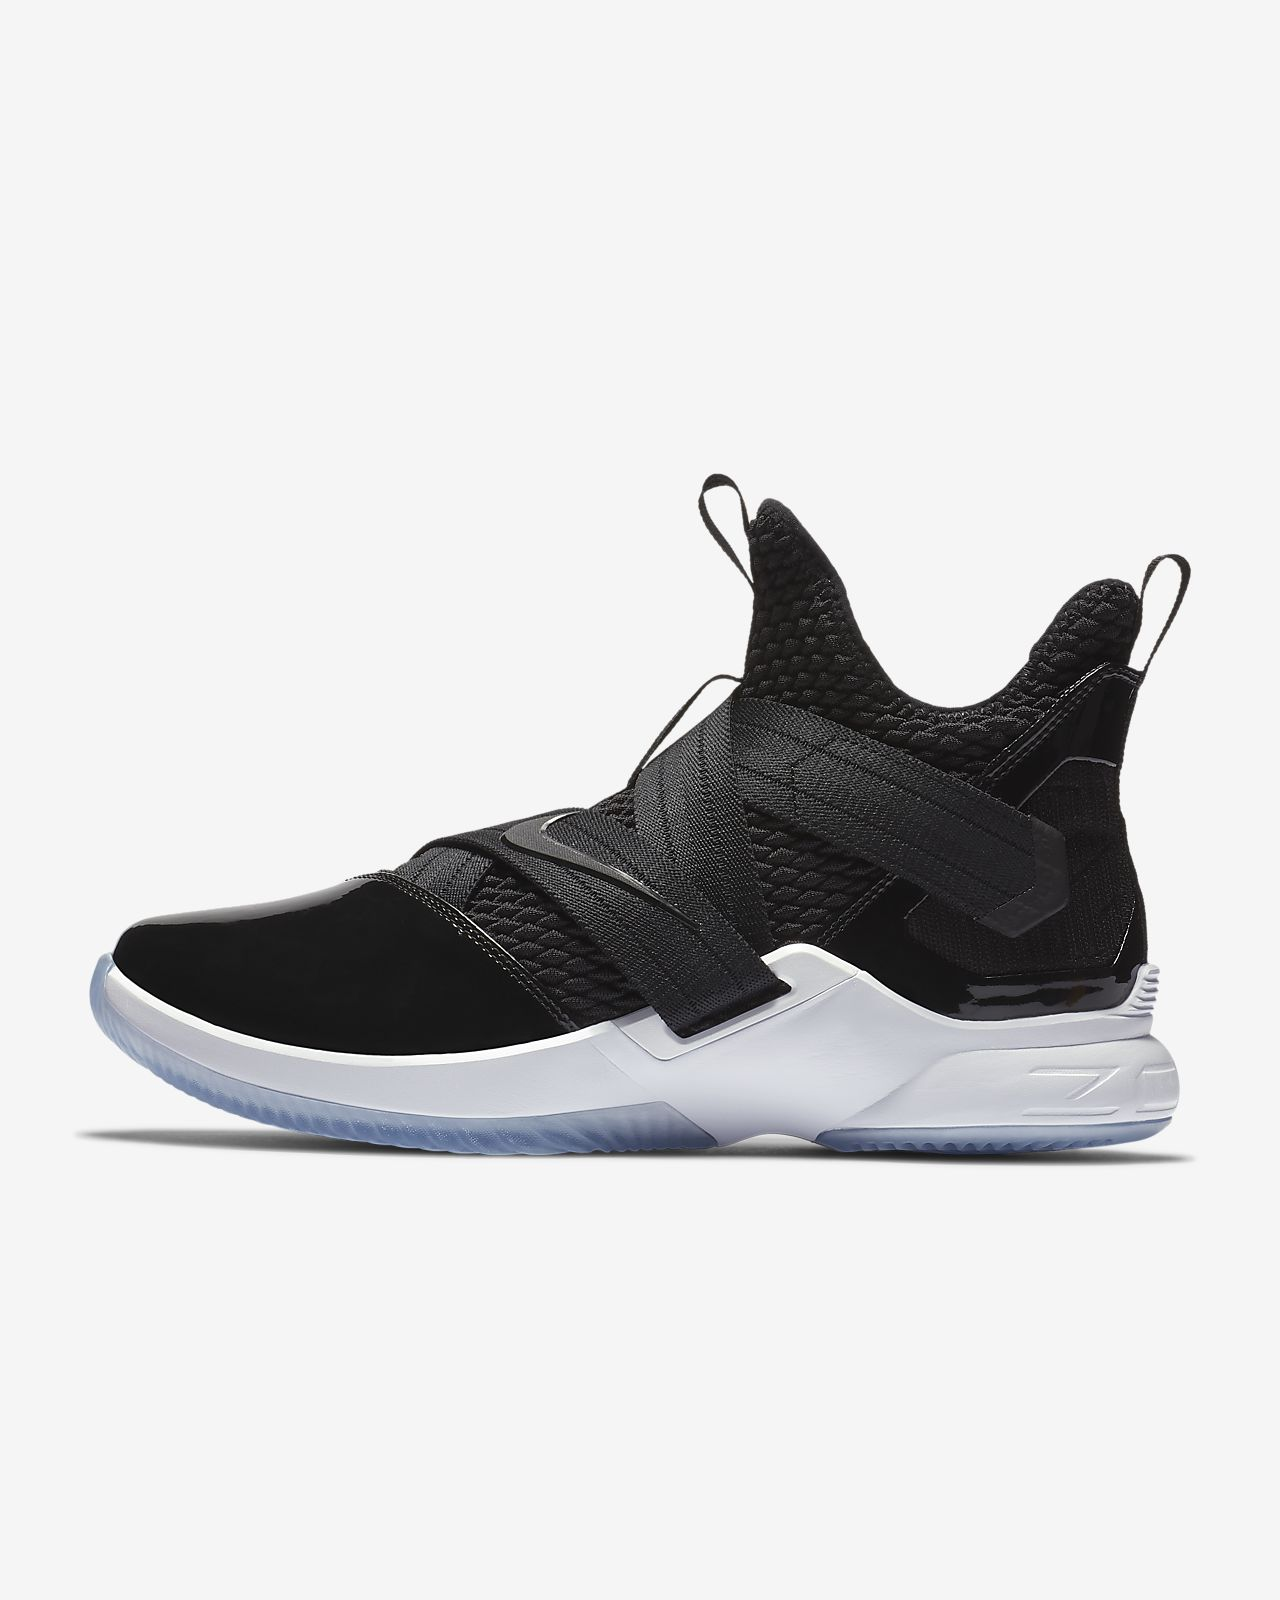 huge discount 7a366 0df22 LeBron Soldier 12 SFG